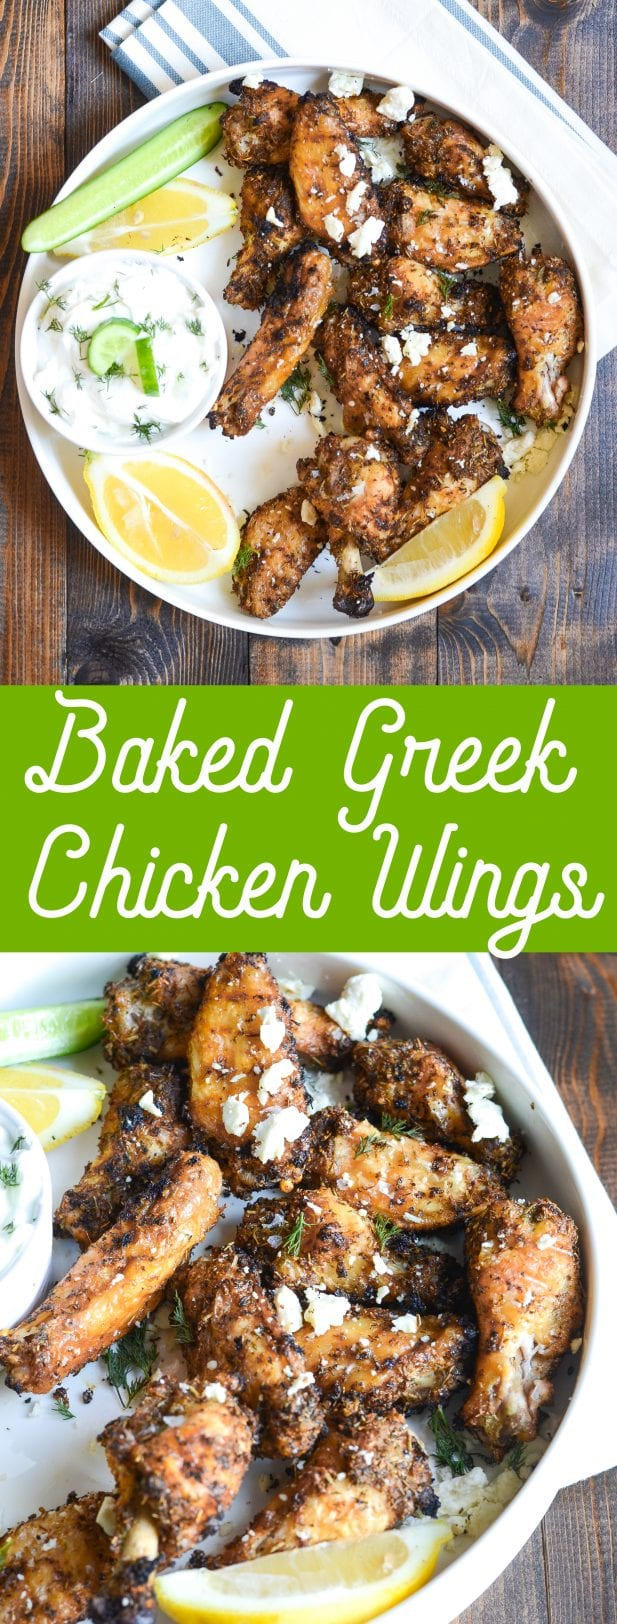 Baked Greek Chicken Wings with Tzatziki